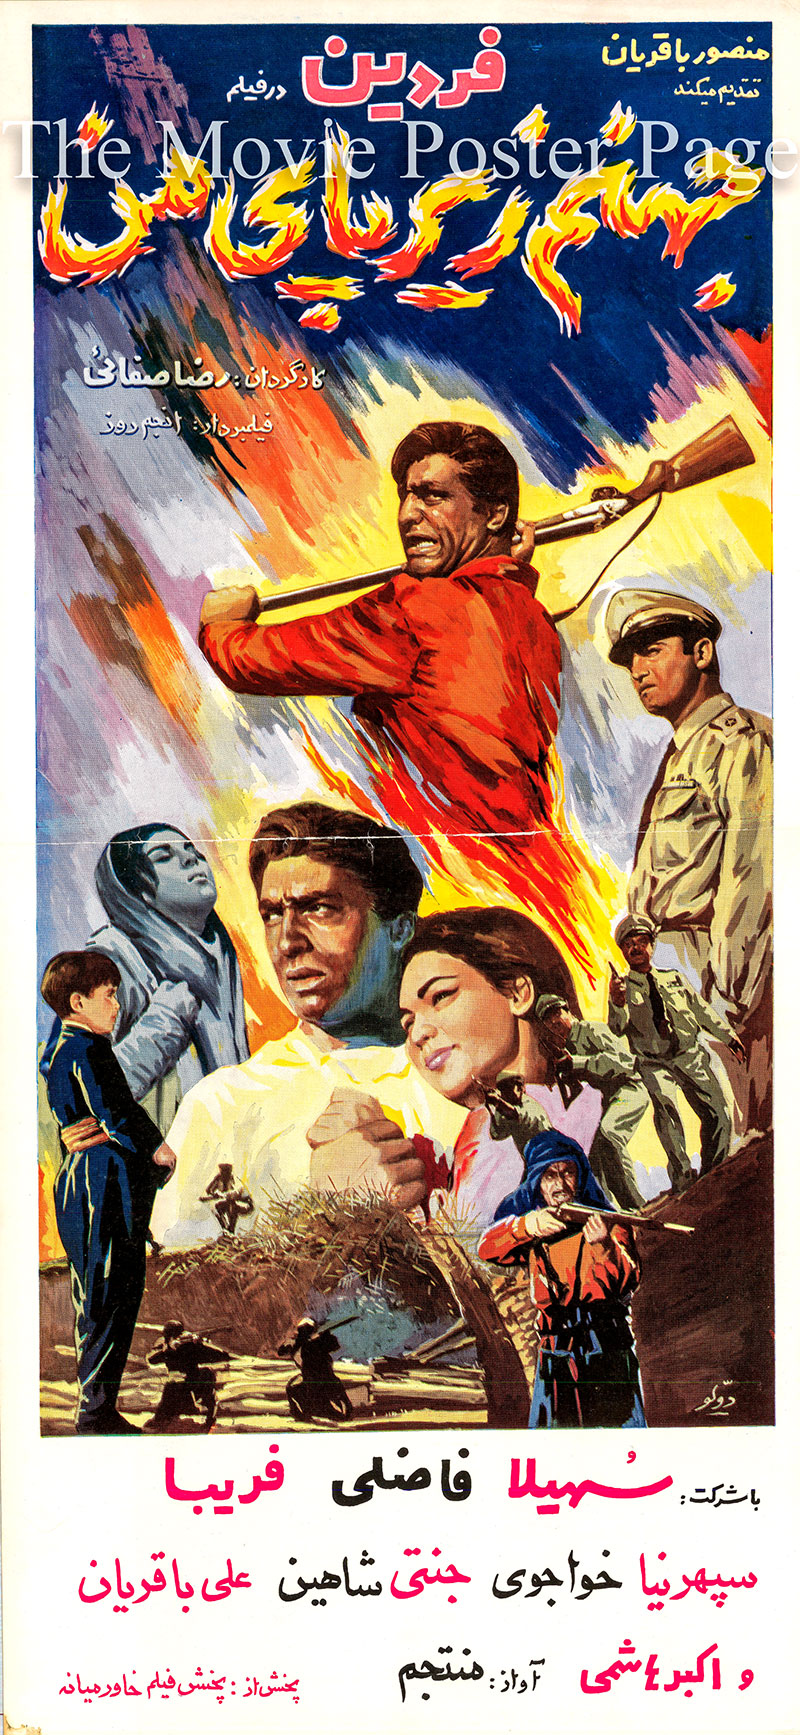 Pictured is an Iranian promotional poster for the 1964 Reza Safai film Hell under My Foot starring Fardin.